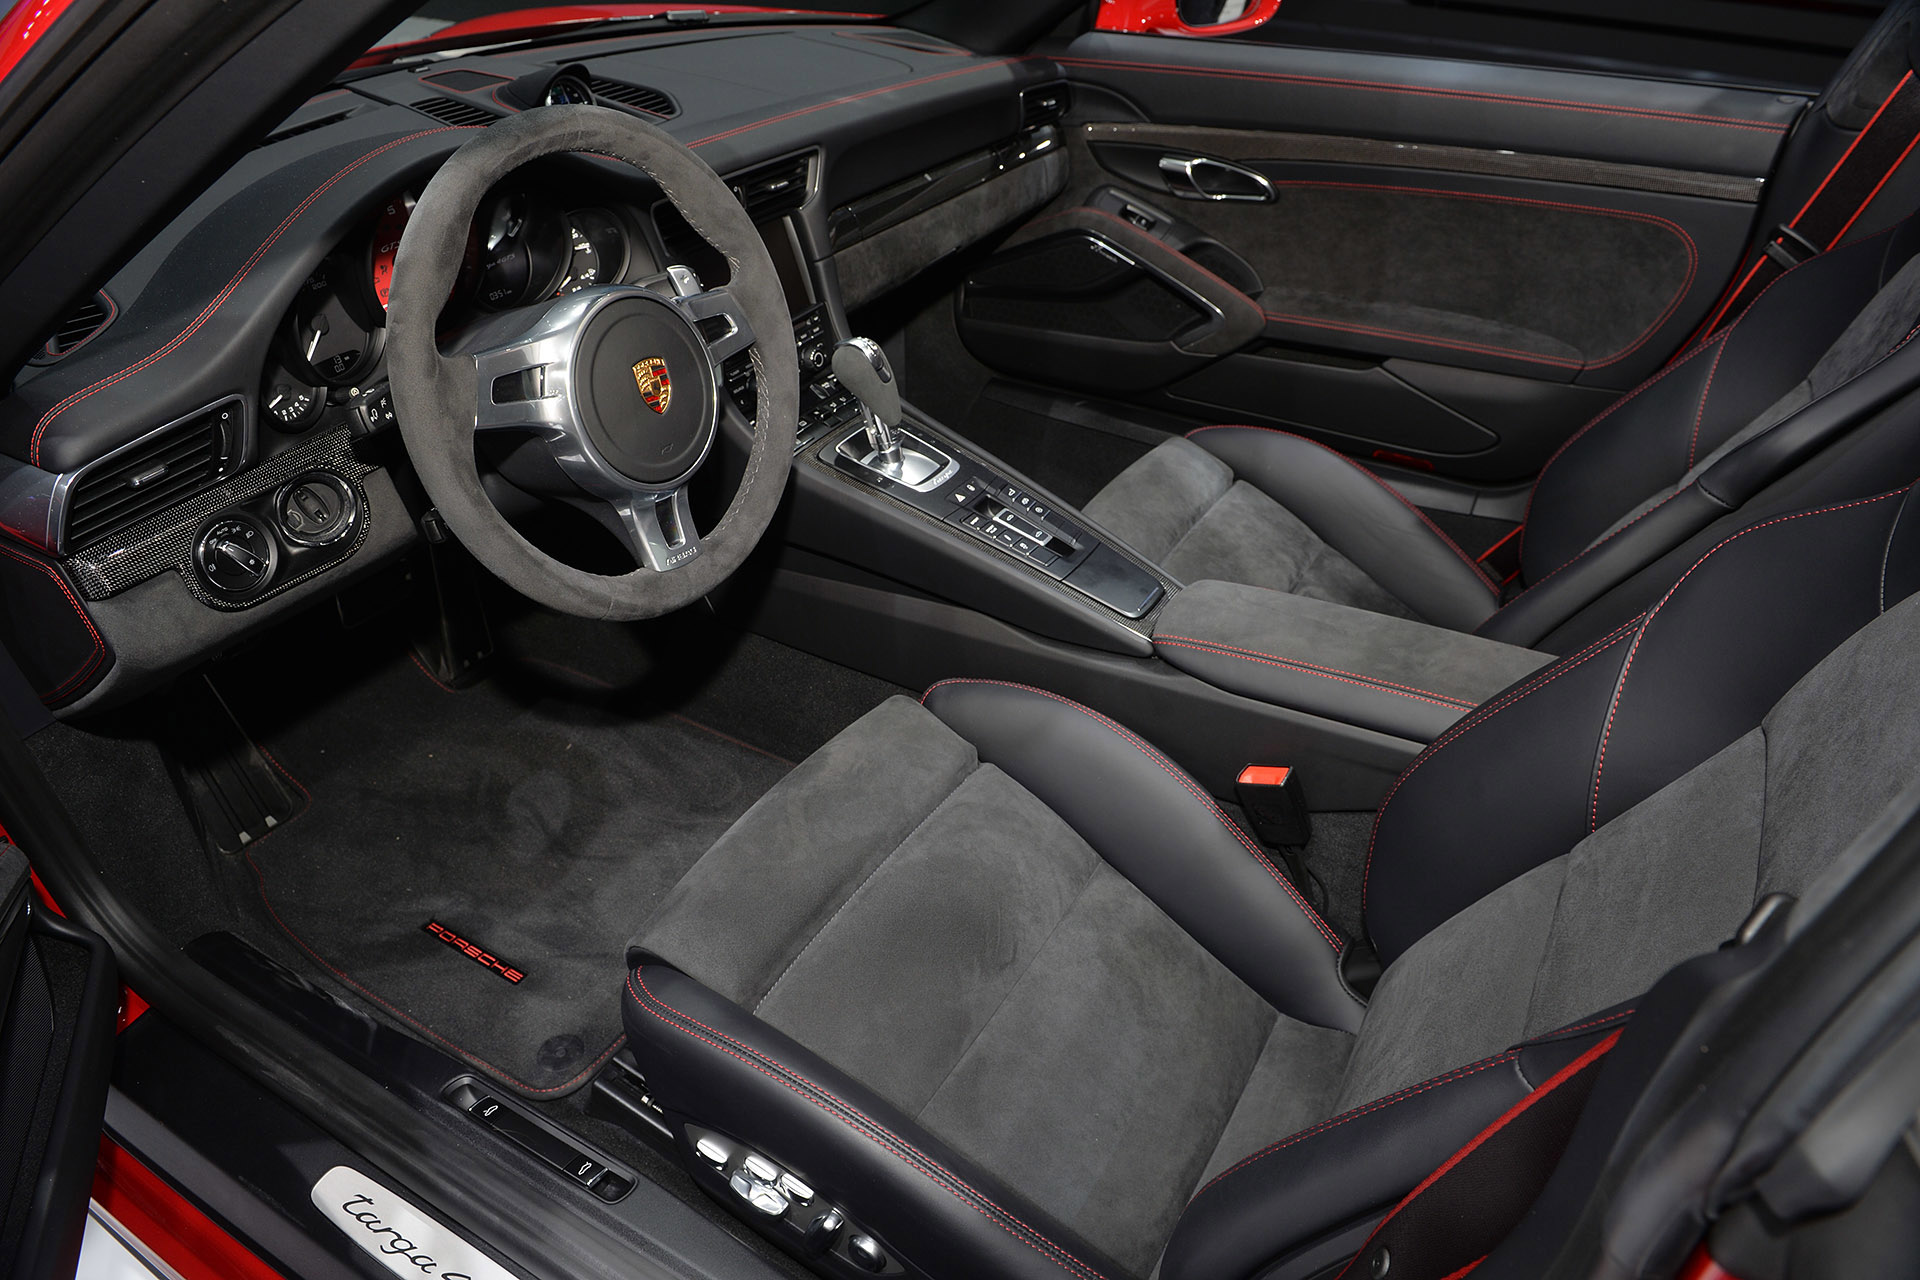 2013 hennessey performance mercedes benz amg e63 v8 biturbo with hpe700 upgrade